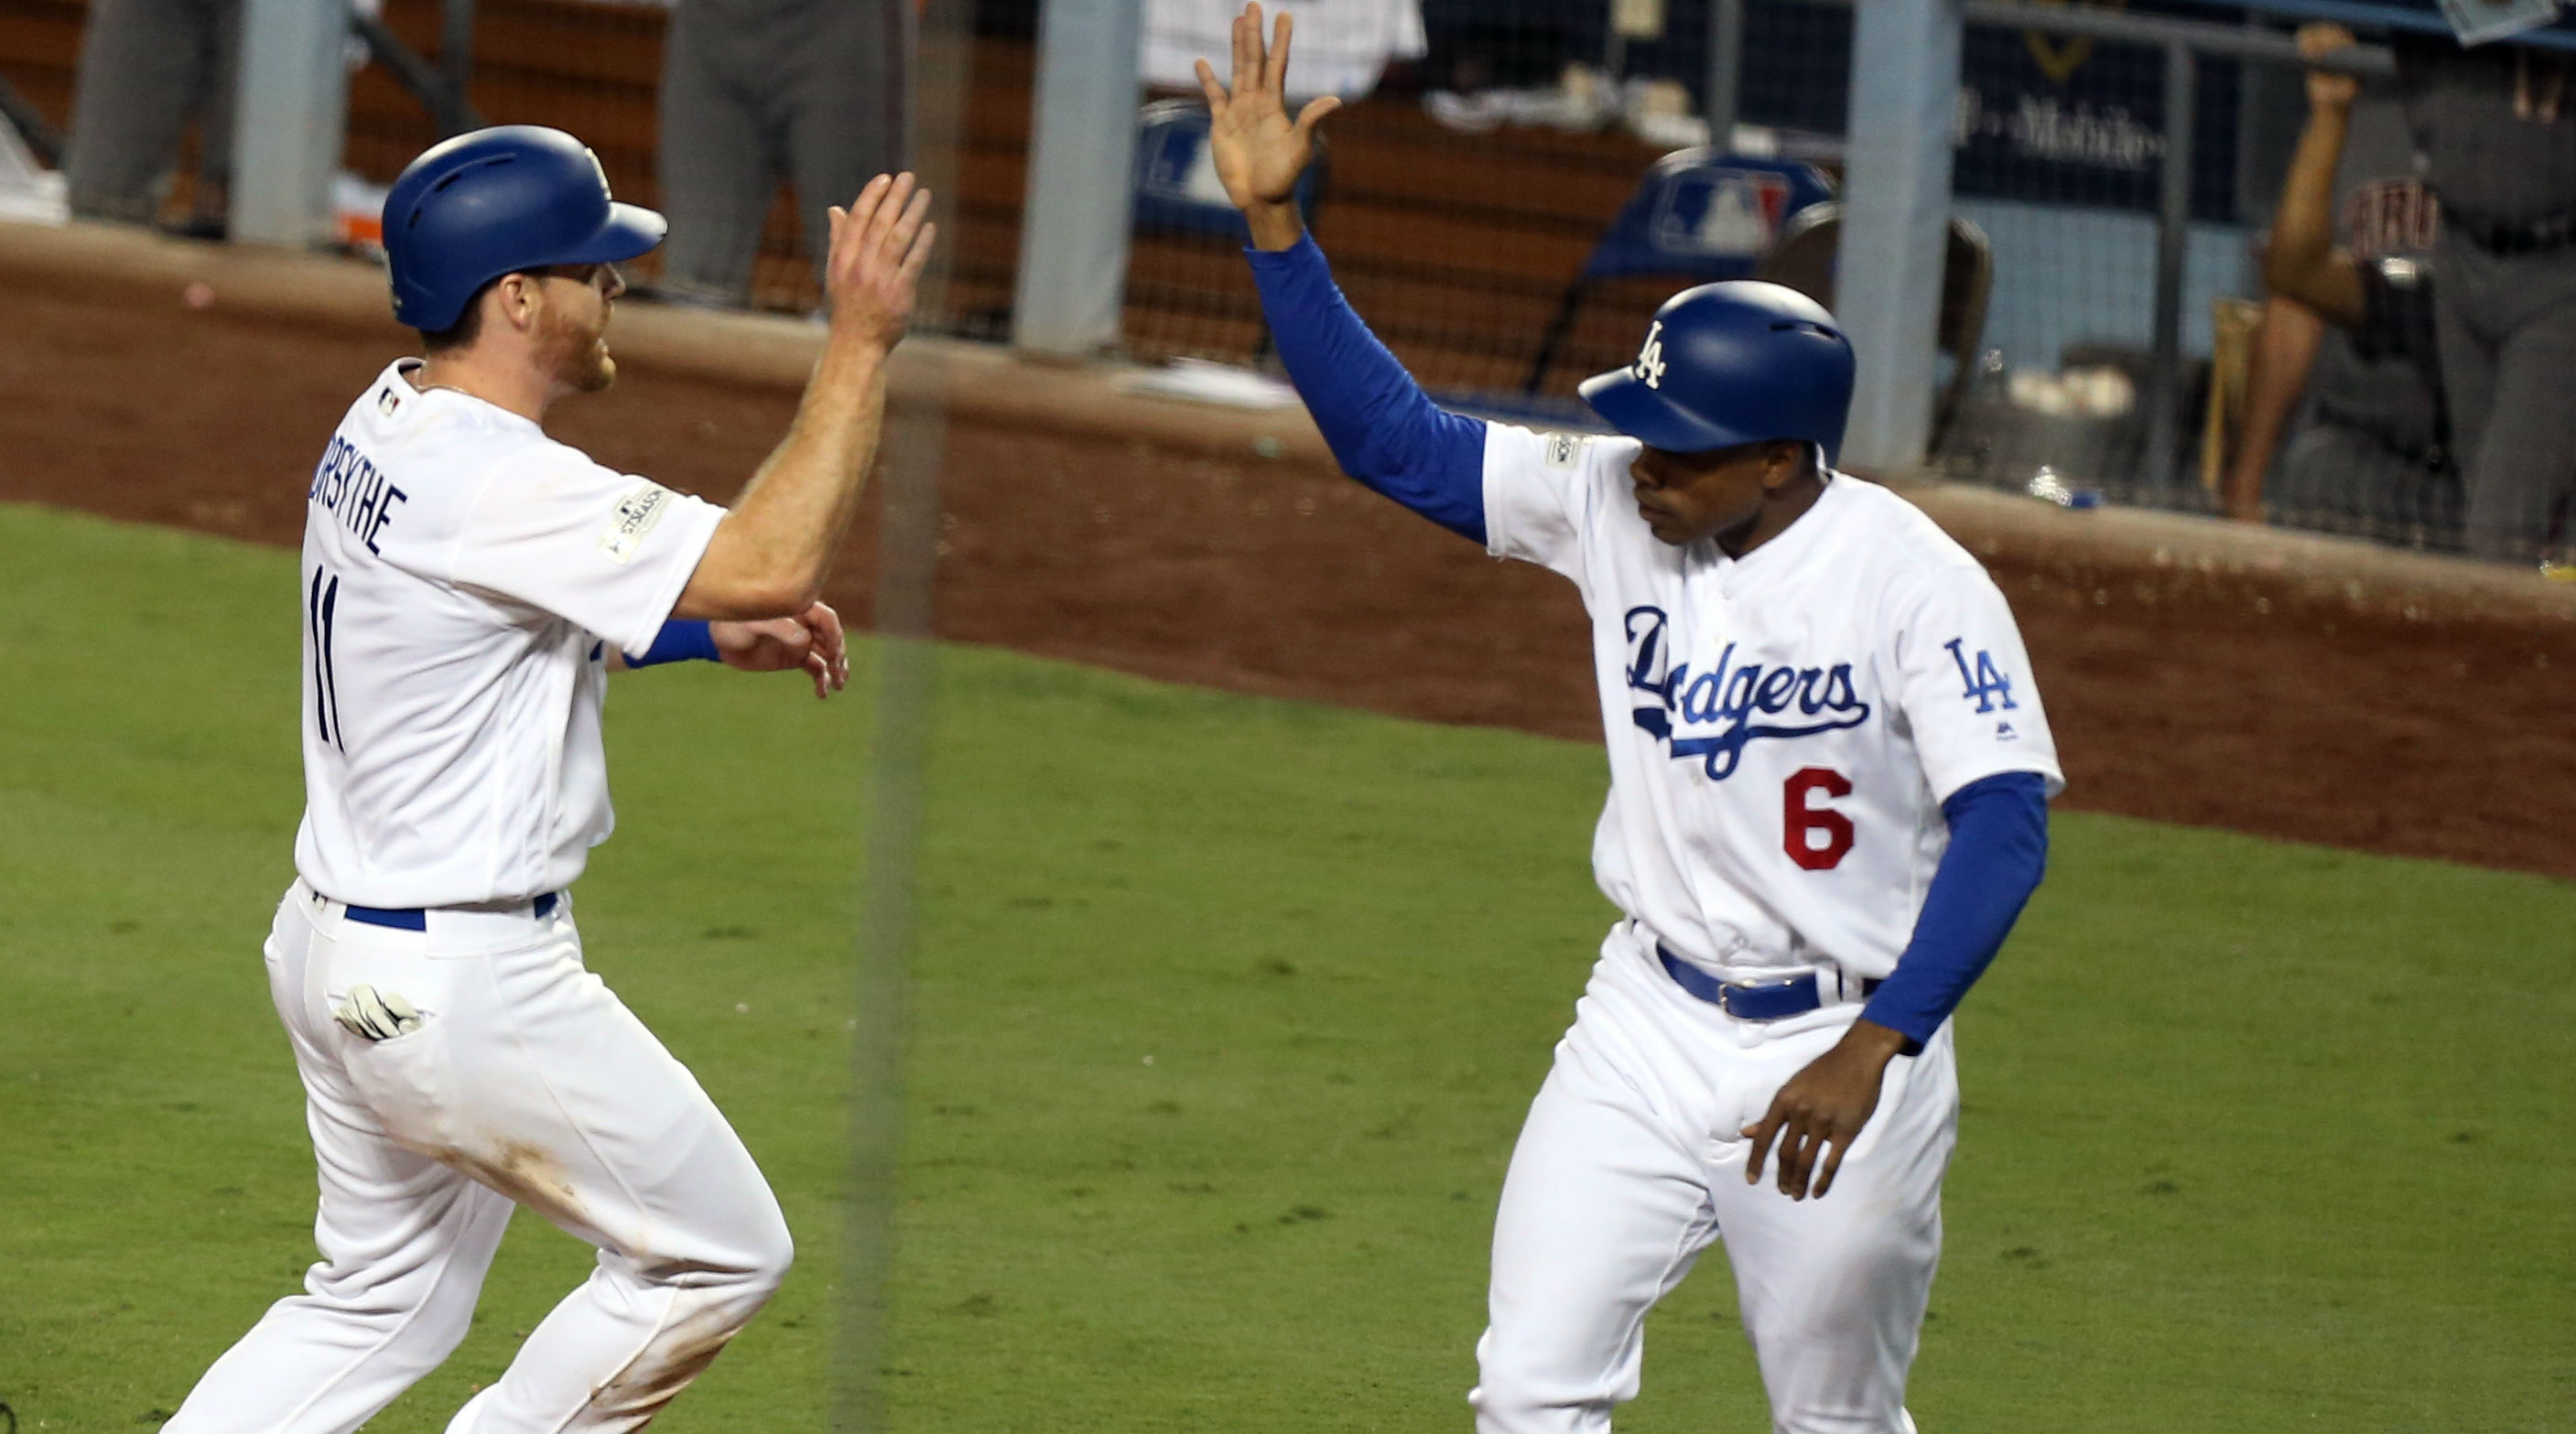 Puig powers Dodgers to 2-game lead in NLDS